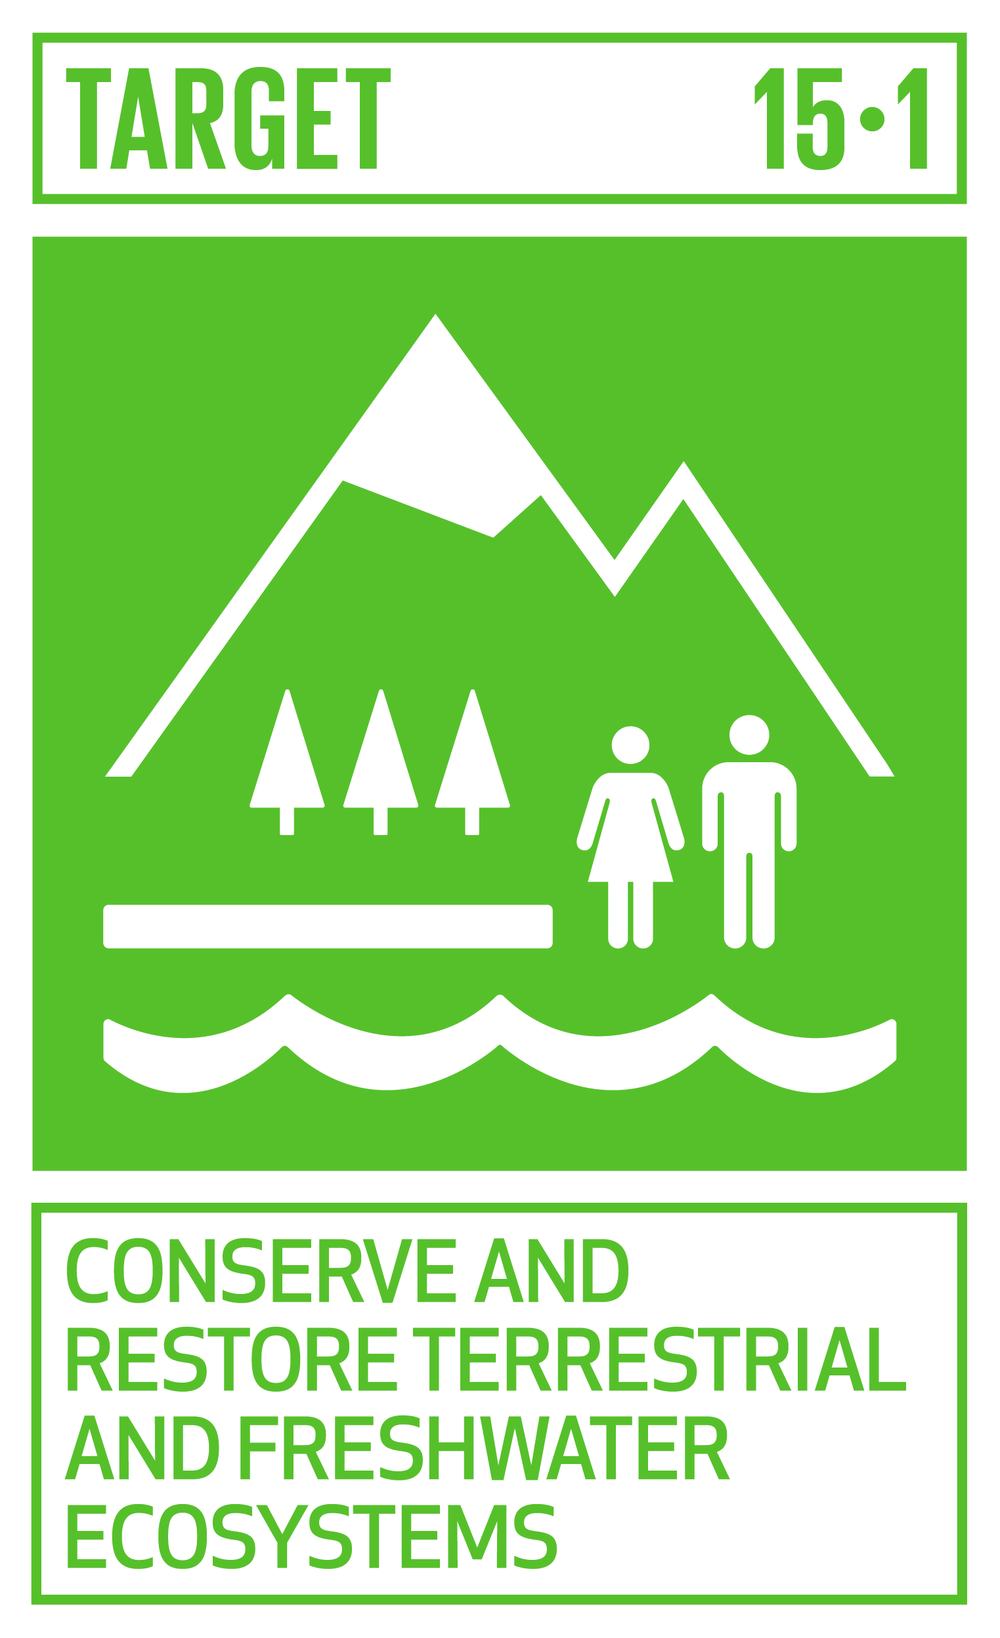 By 2020, ensure the conservation, restoration and sustainable use of terrestrial and inland freshwater ecosystems and their services, in particular forests, wetlands, mountains and drylands, in line with obligations under international agreements.   INDICATORS    15.1.1  Forest area as a proportion of total land area   15.1.2  Proportion of important sites for terrestrial and freshwater biodiversity that are covered by protected areas, by ecosystem type